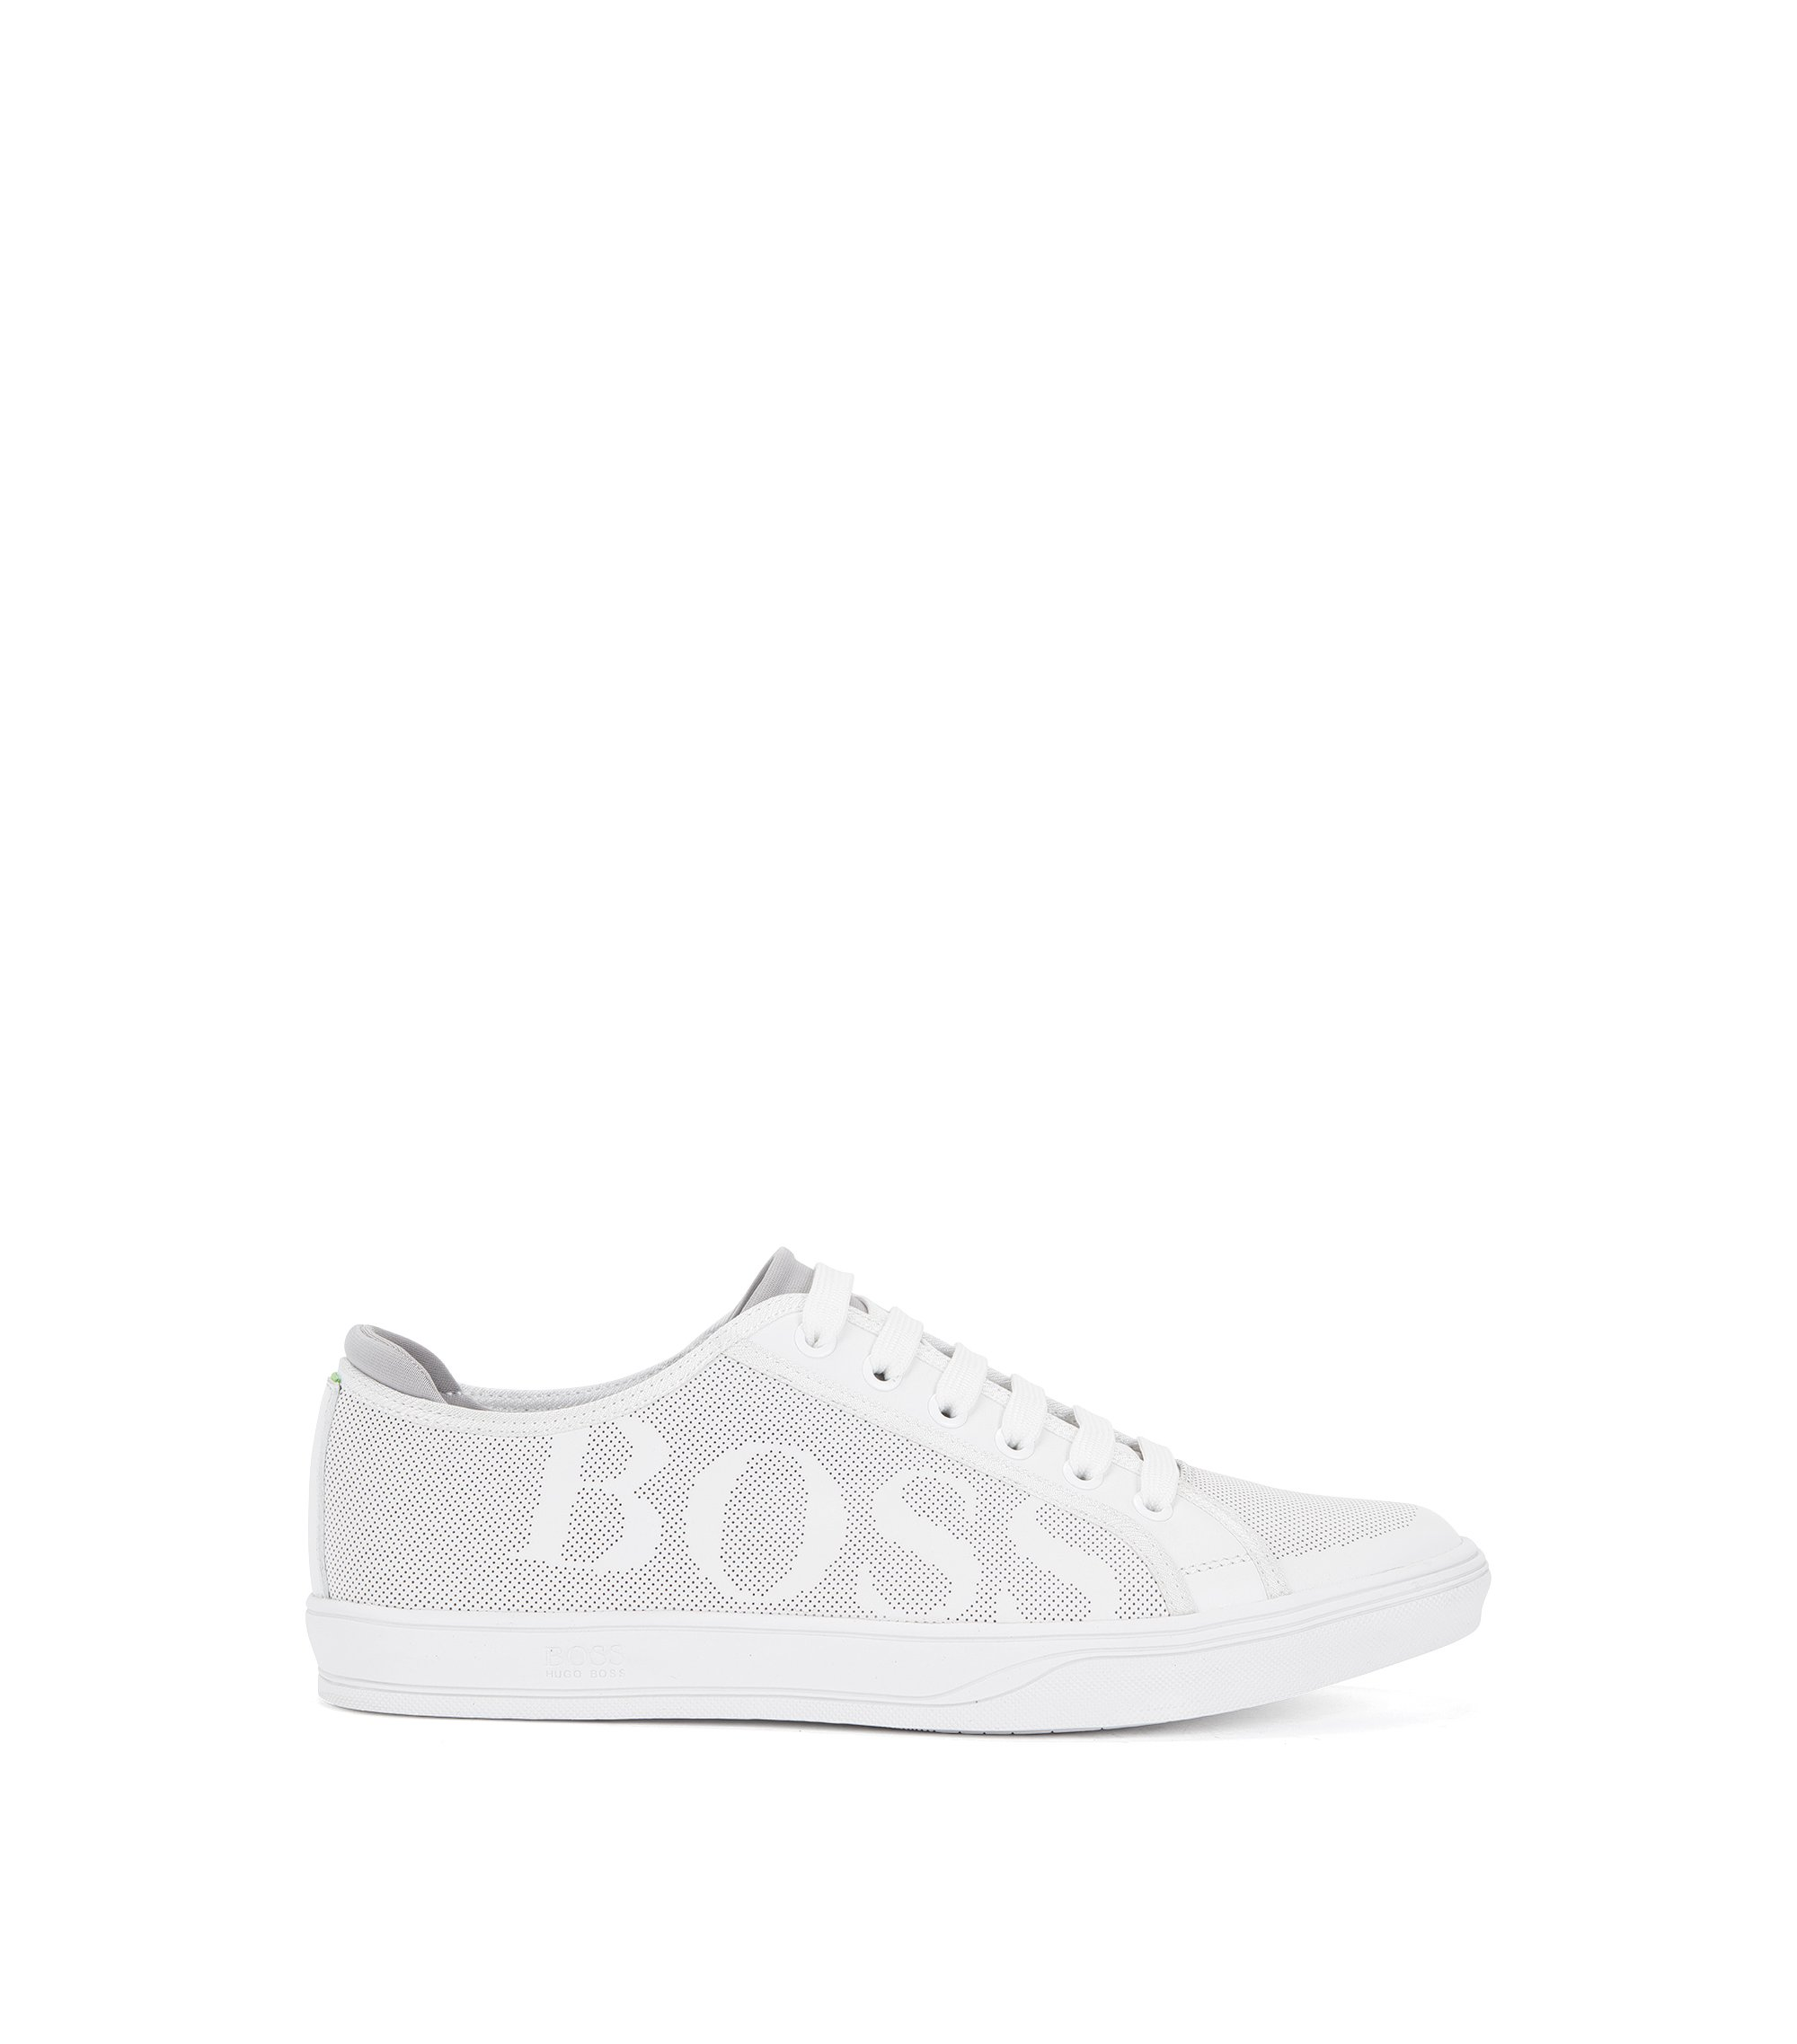 Tennis-style leather trainers with perforated detail, White